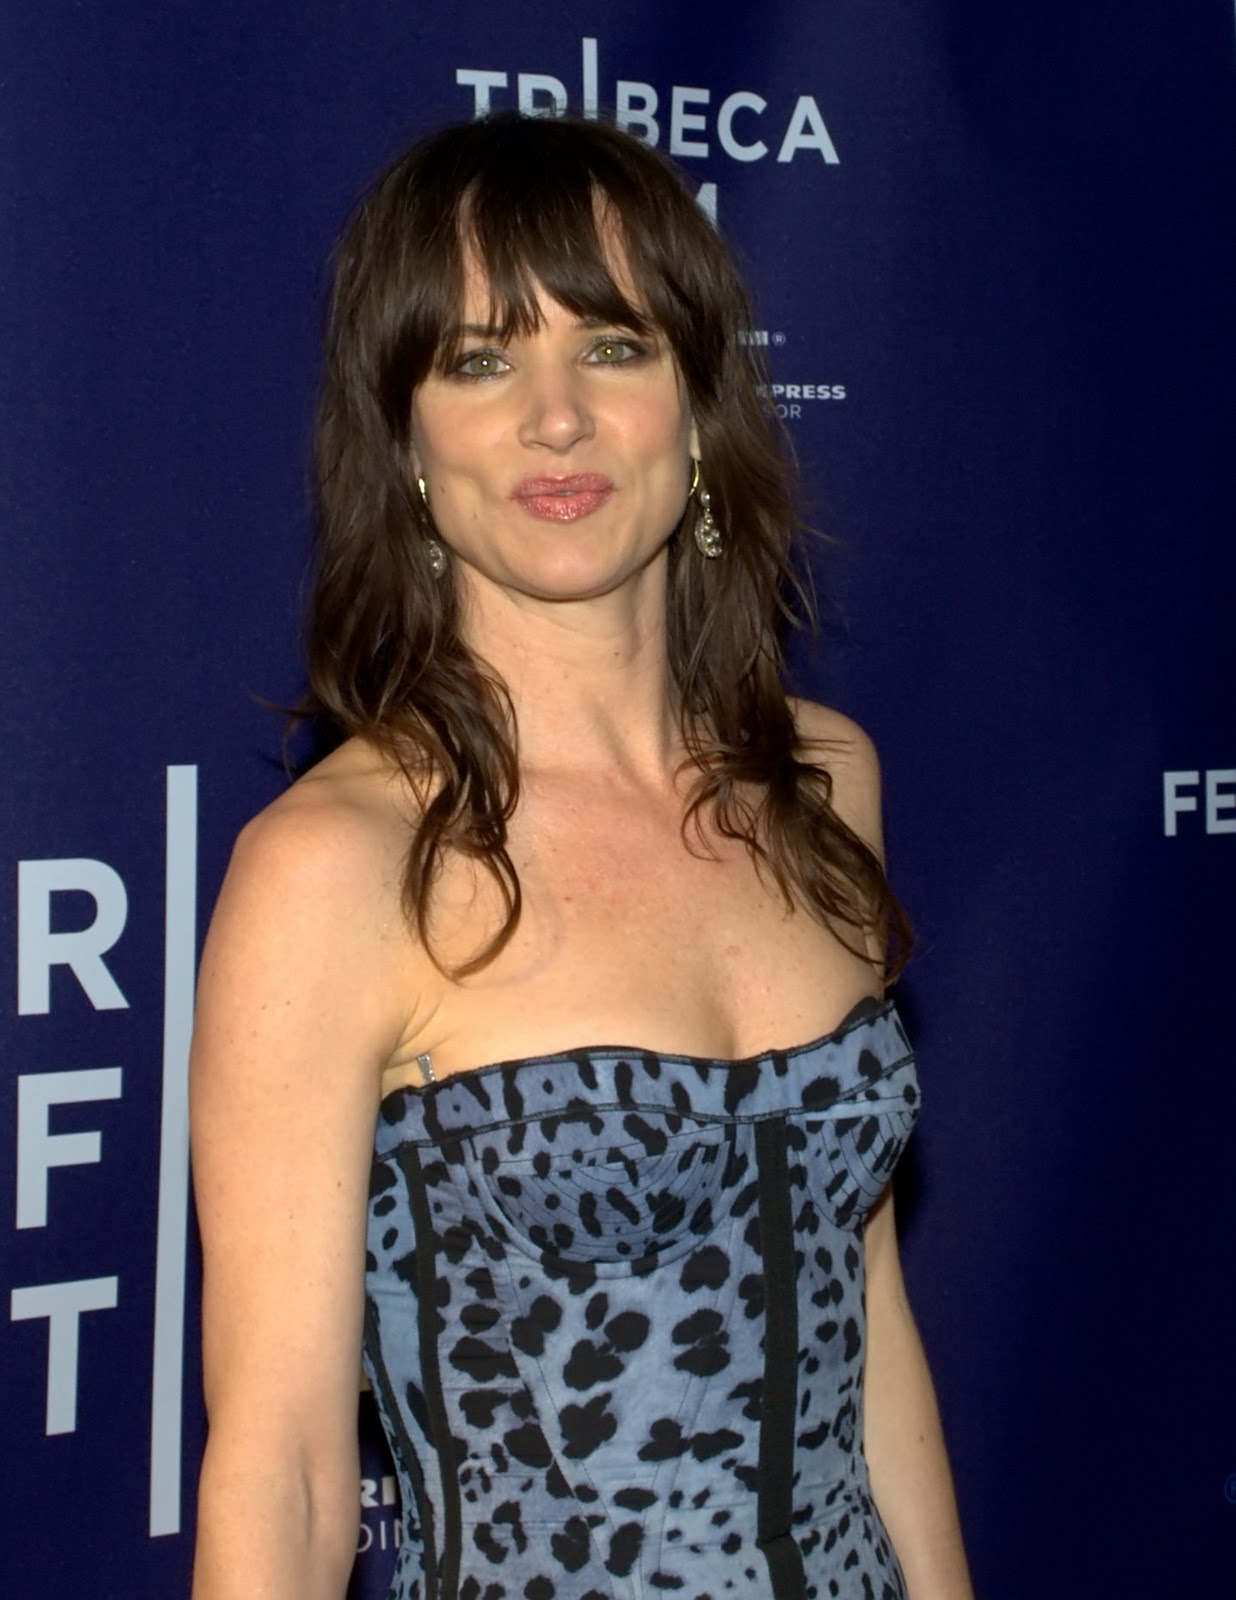 Juliette Lewis - Images Gallery